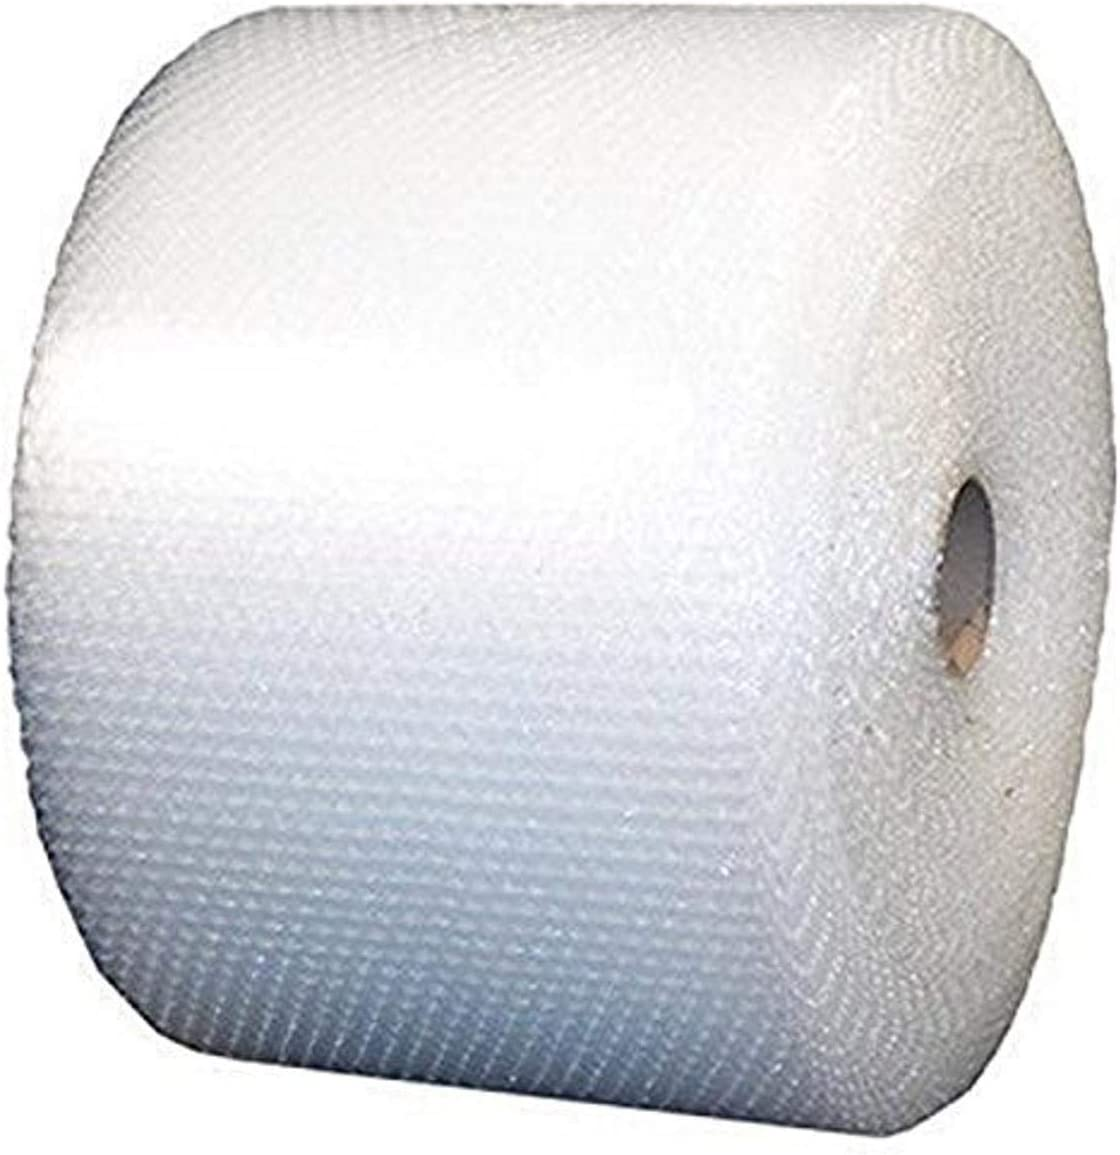 """USPACKSHOP up-12-175-15 175' 3/16"""" Small Bubble Cushioning Wrap Perforated Every 12"""", 12"""" Wide : Office Products"""